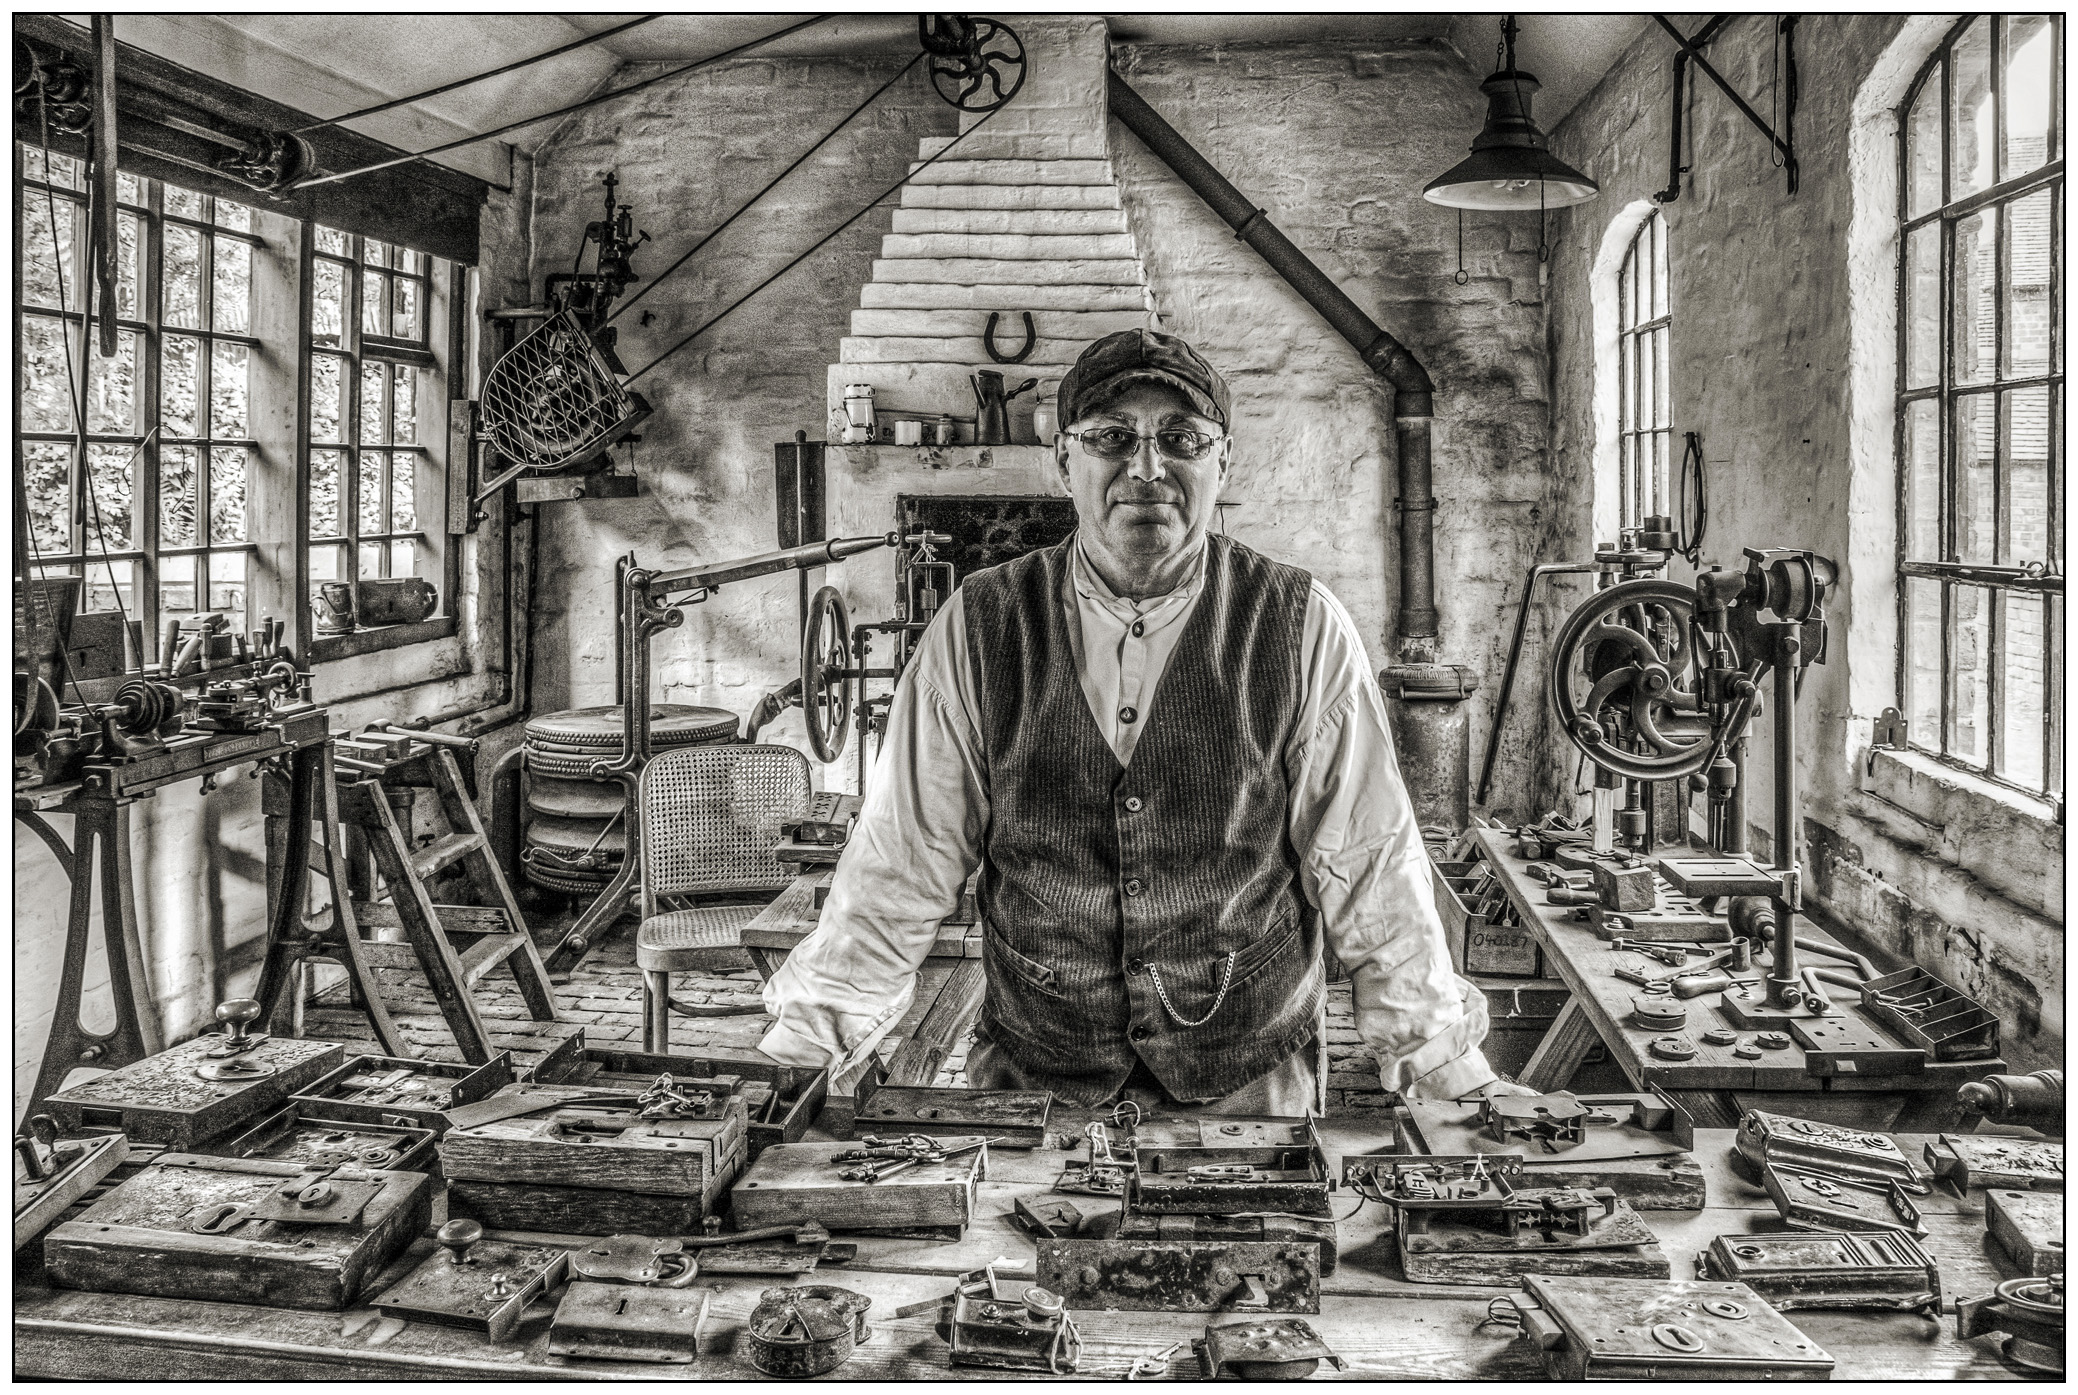 The Locksmith, Blists Hill Museum